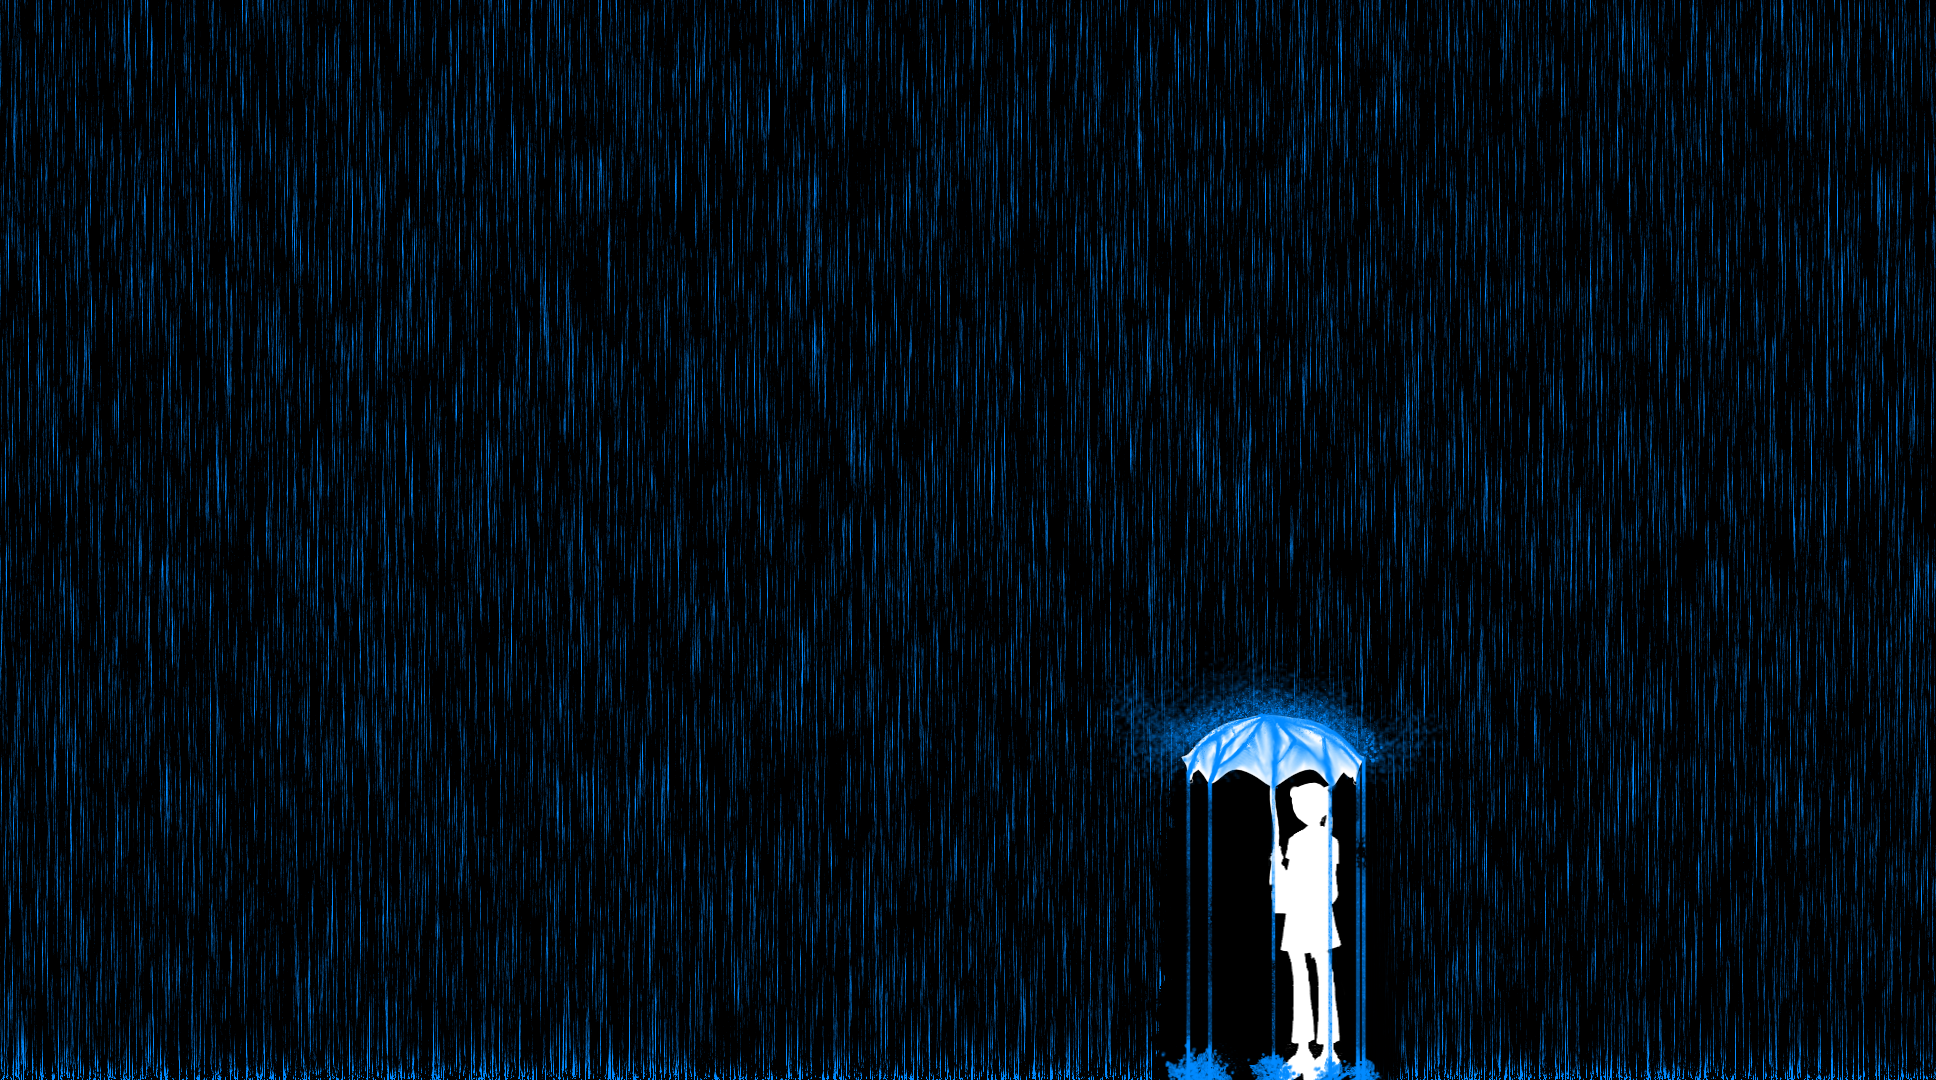 Rainy Day Wallpaper TUTORIAL by theoneandonly06 1936x1080